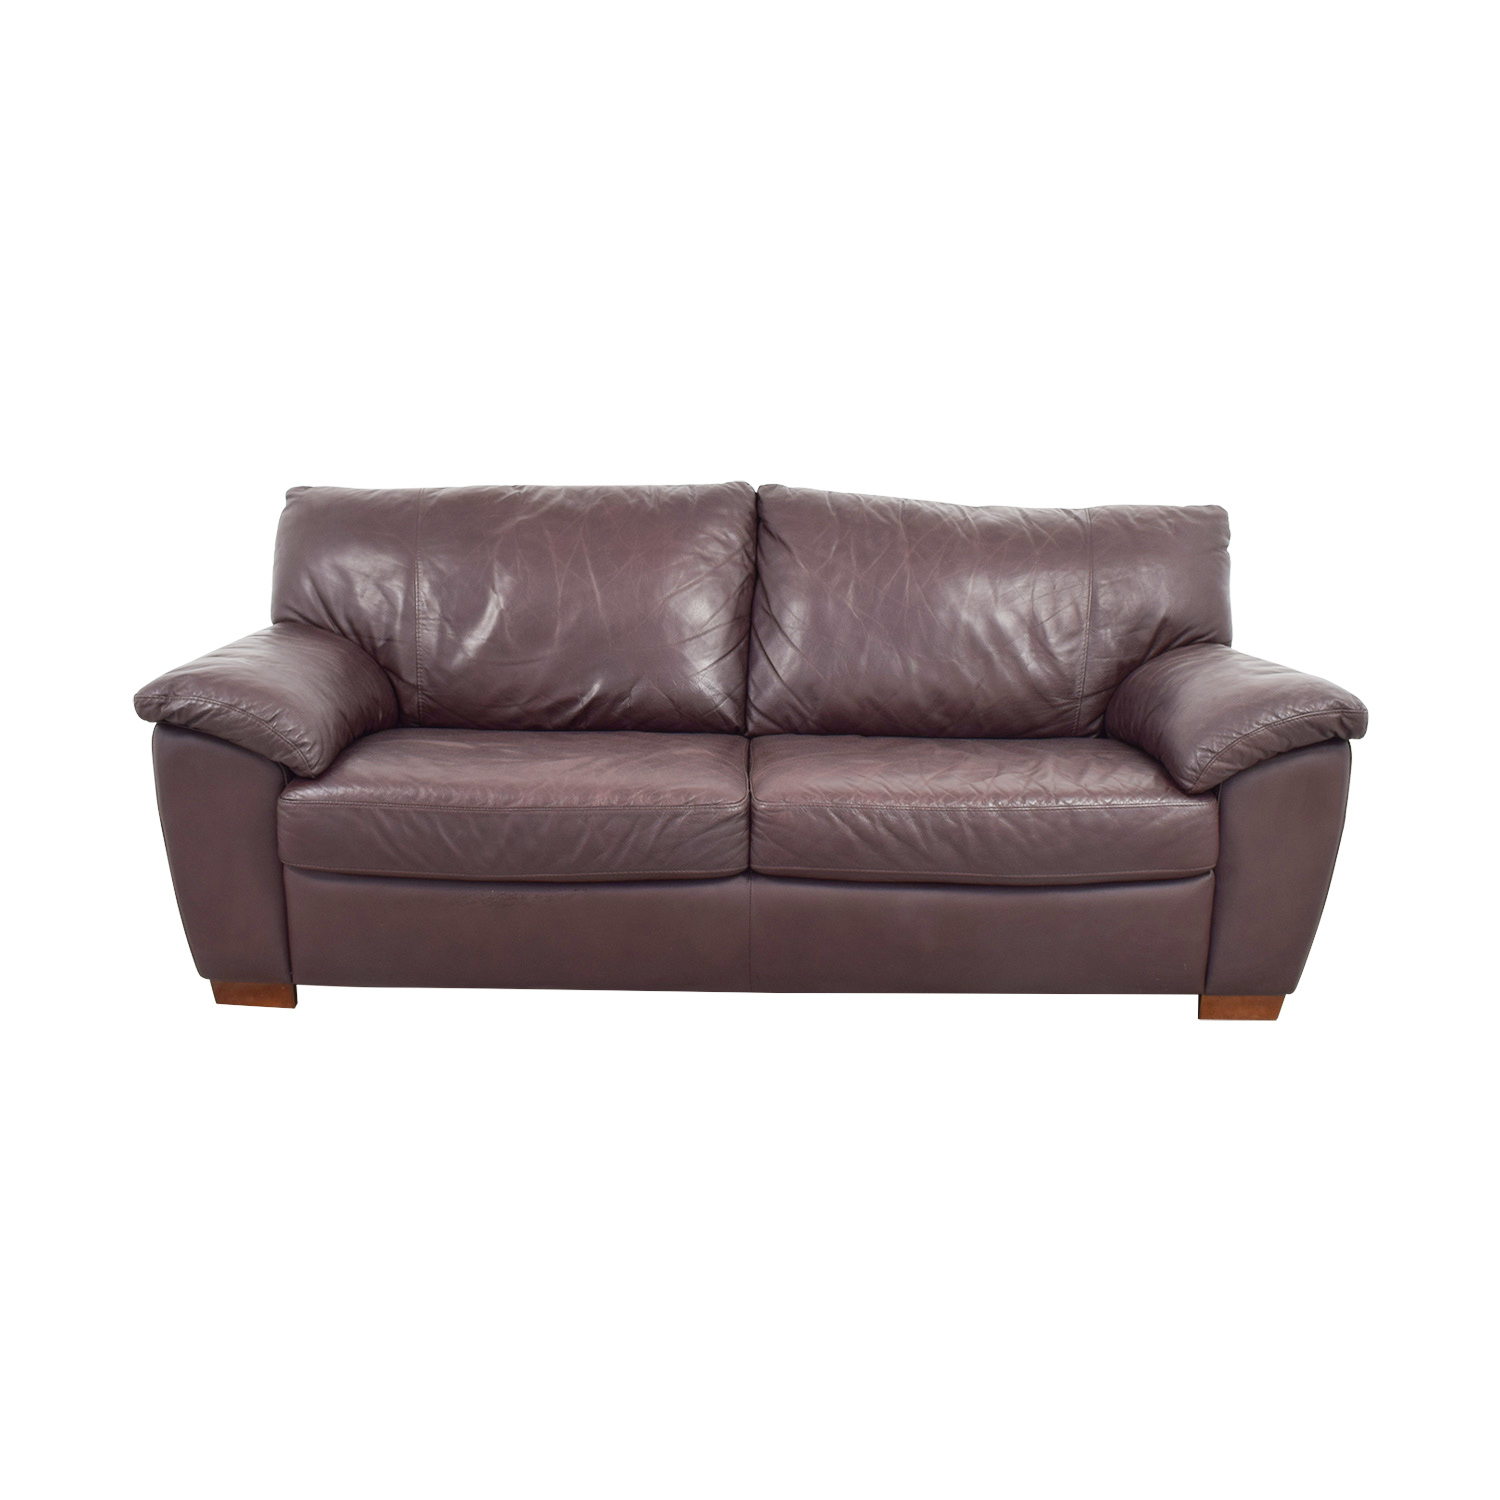 Prime 87 Off Ikea Ikea Vreta Brown Leather Two Cushion Sofa Sofas Onthecornerstone Fun Painted Chair Ideas Images Onthecornerstoneorg